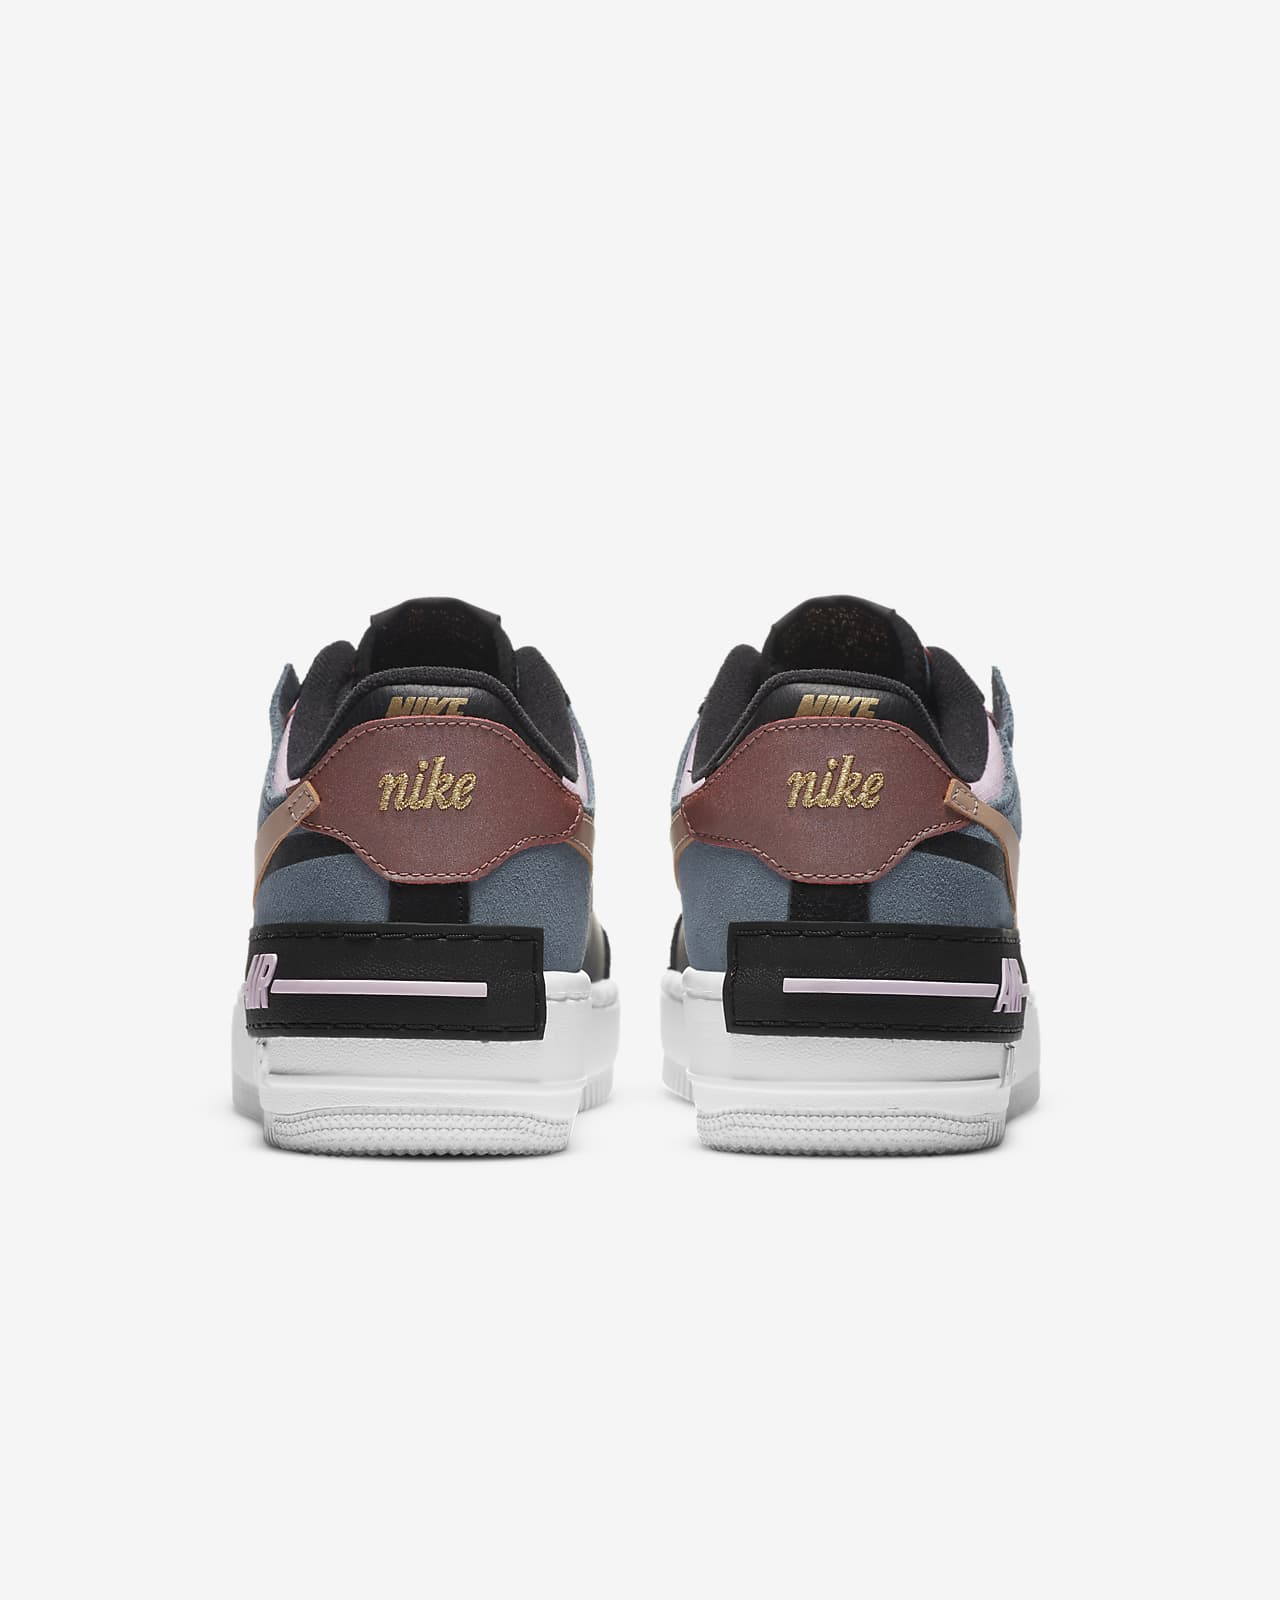 Nike Air Force 1 Shadow Women S Shoe Nike Id This nike air force 1 low comes with sail tumbled leather across the upper while a shiny leather in orange lands on the panels. nike air force 1 shadow women s shoe